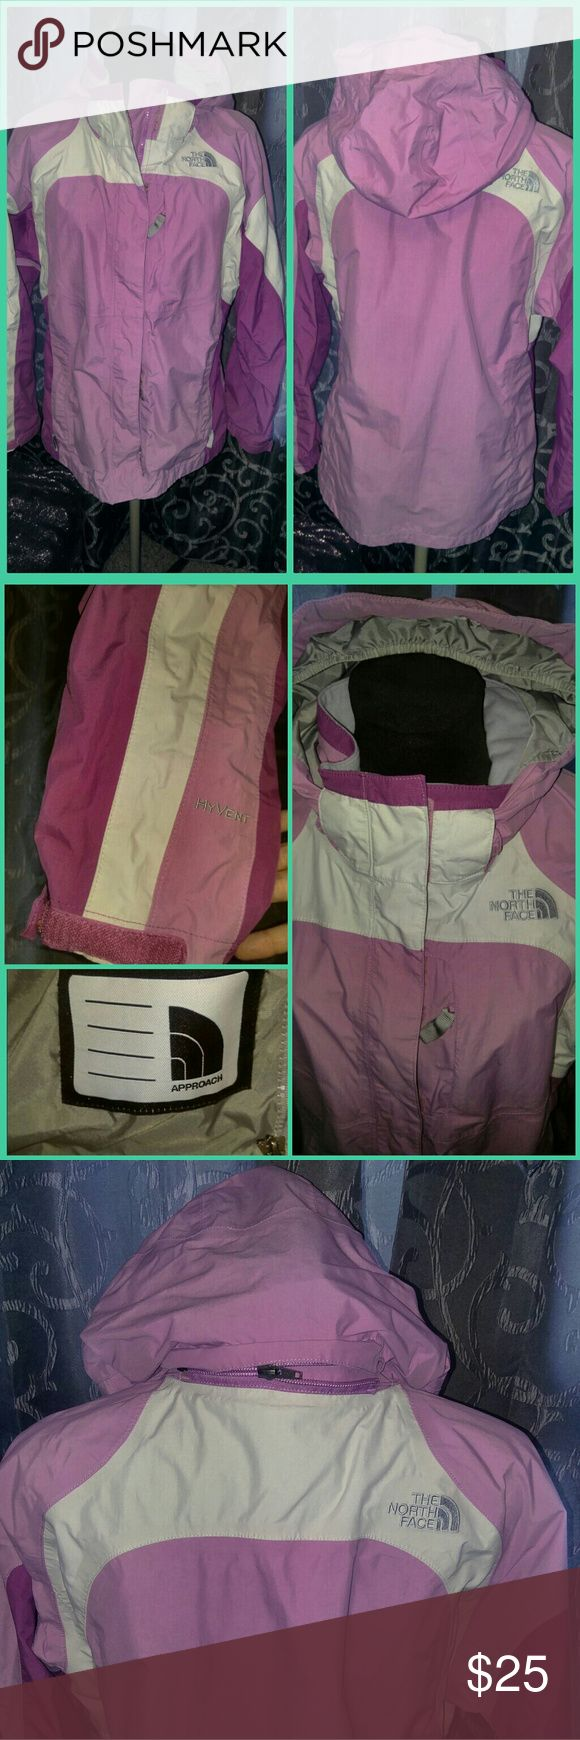 NORTH FACE Pink Rain & Wind Jacket - Lightweight This pink jacket is perfect to stay bright on a rainy or windy day!  You can zip a light fleece on the inside of the jacket for a quick transformation into a warmer, waterproof winter coat.  I'm 5'7 and it fits me well.  Some fuzz in the Velcro by the main zipper, but otherwise in perfect condition.  Worn maybe a few times. The North Face Jackets & Coats Raincoats